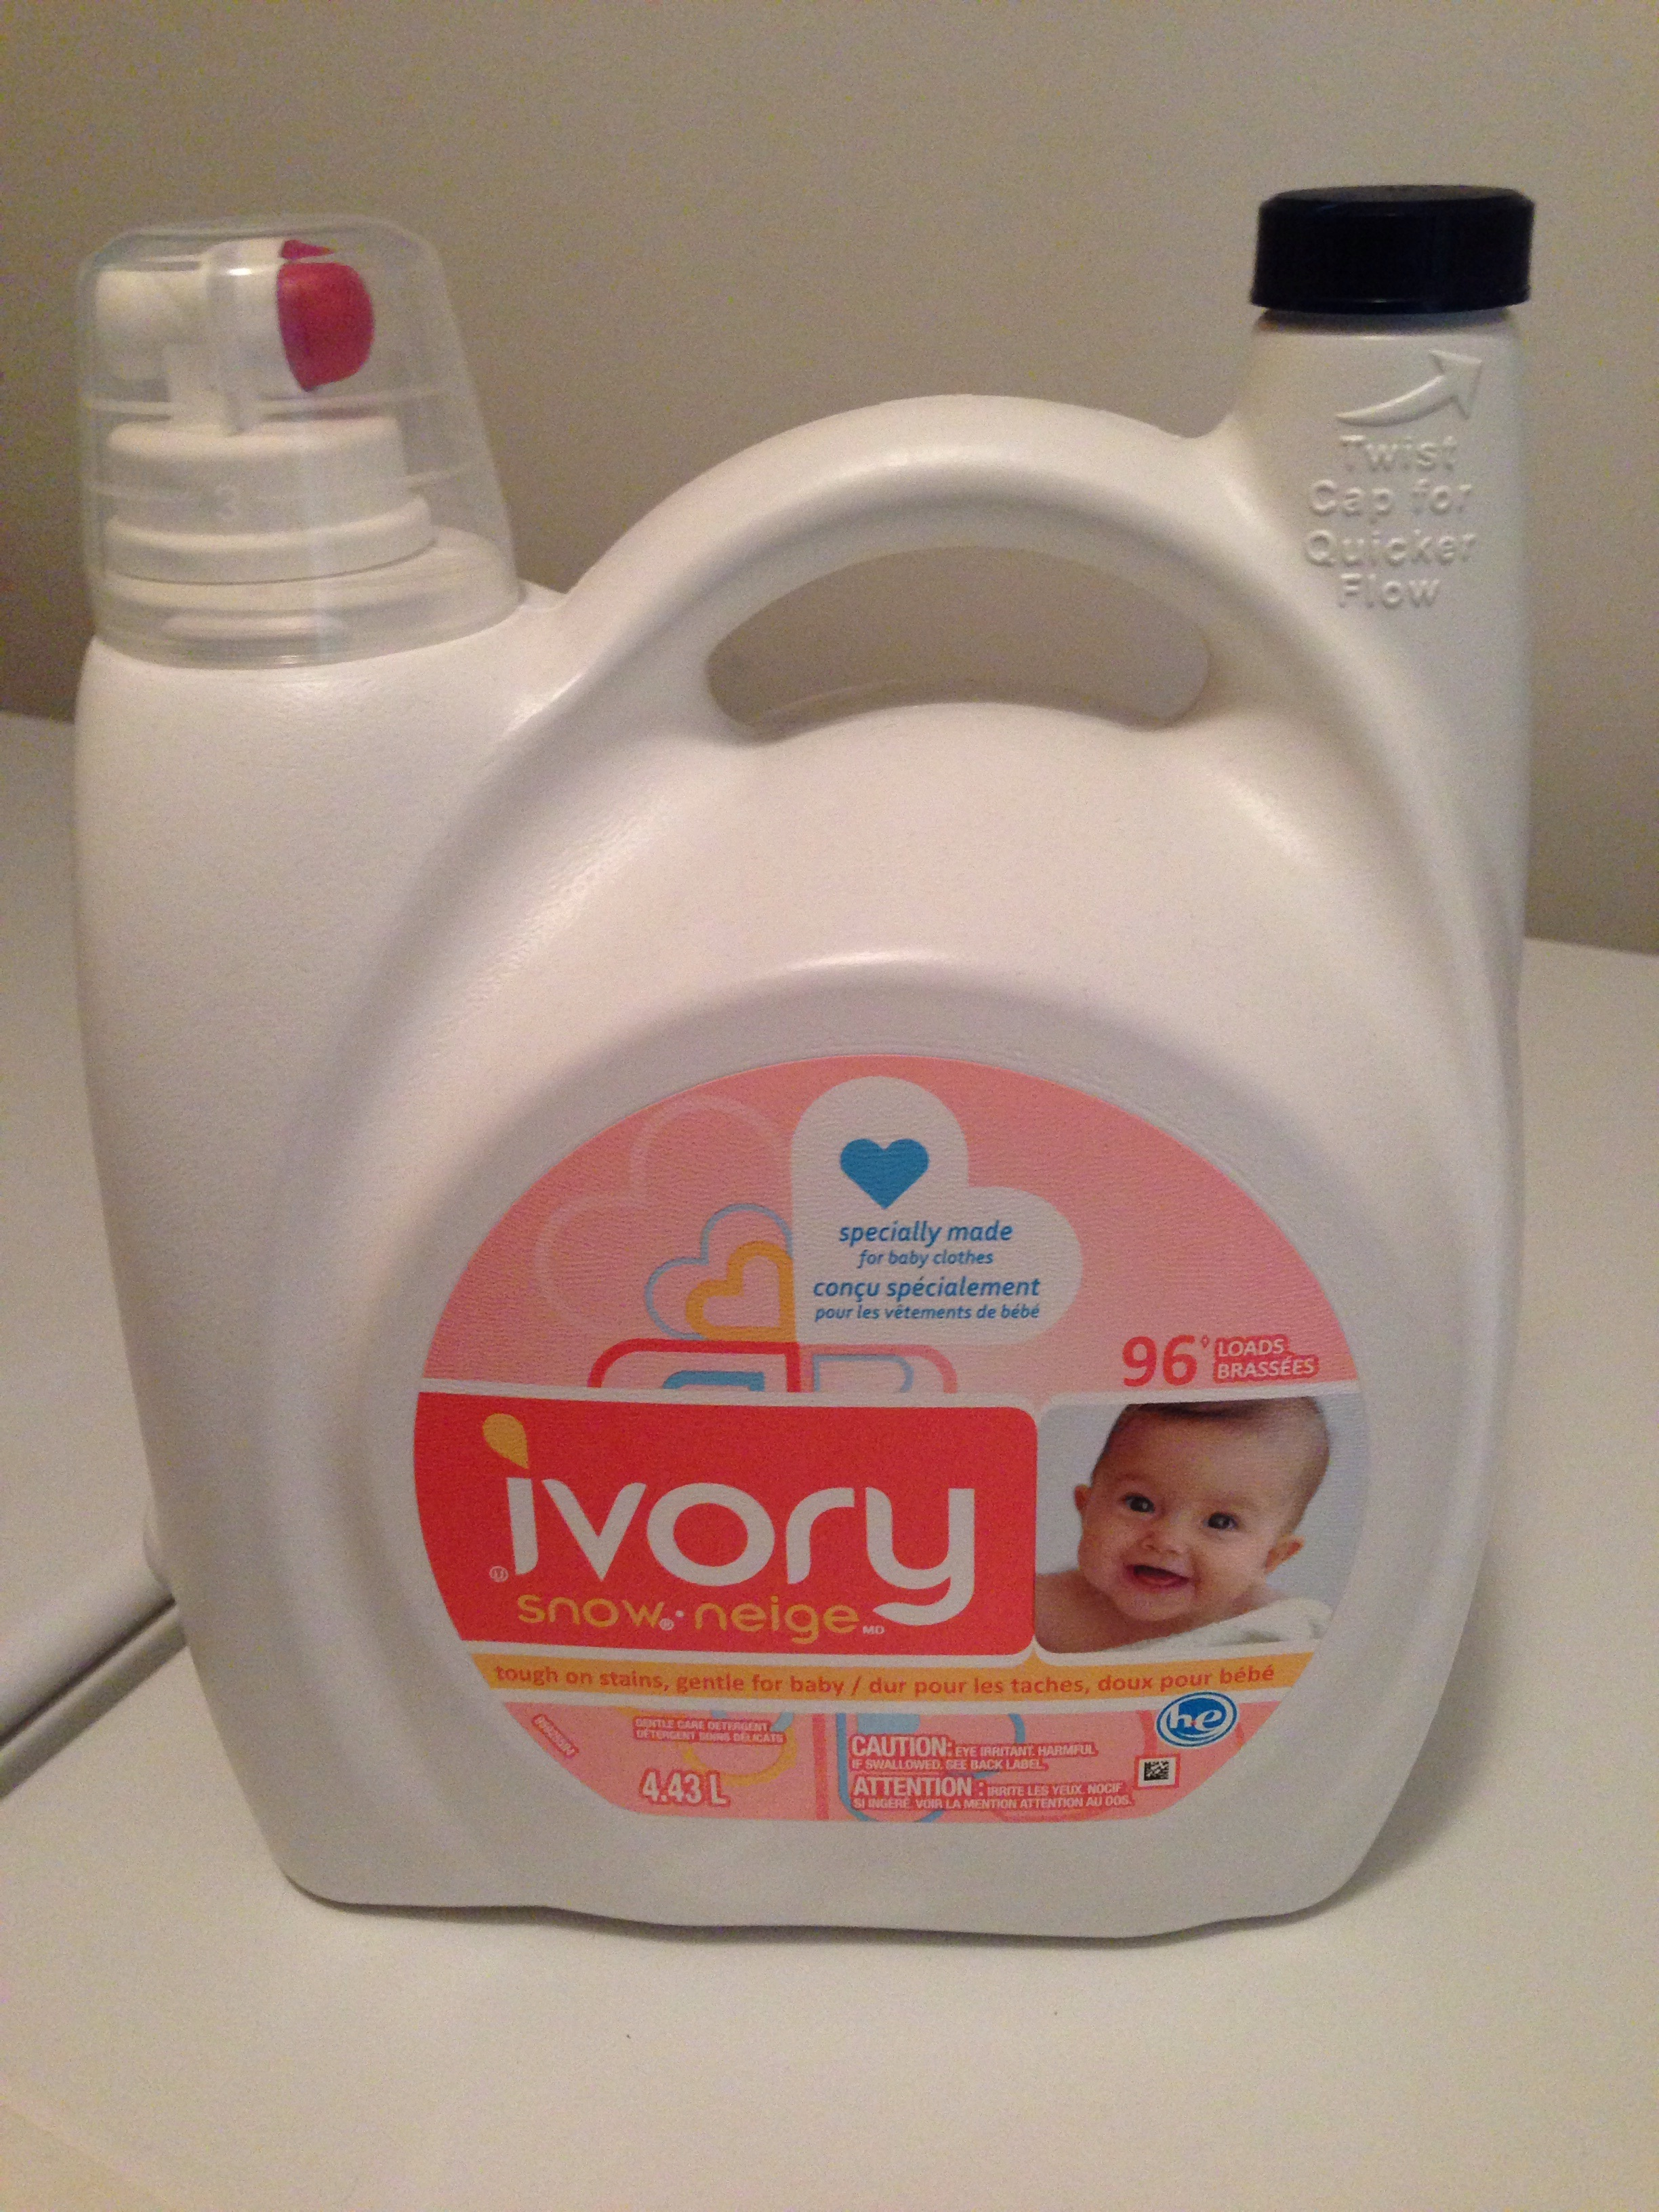 Ivory Snow Laundry Detergent Reviews In Laundry Care